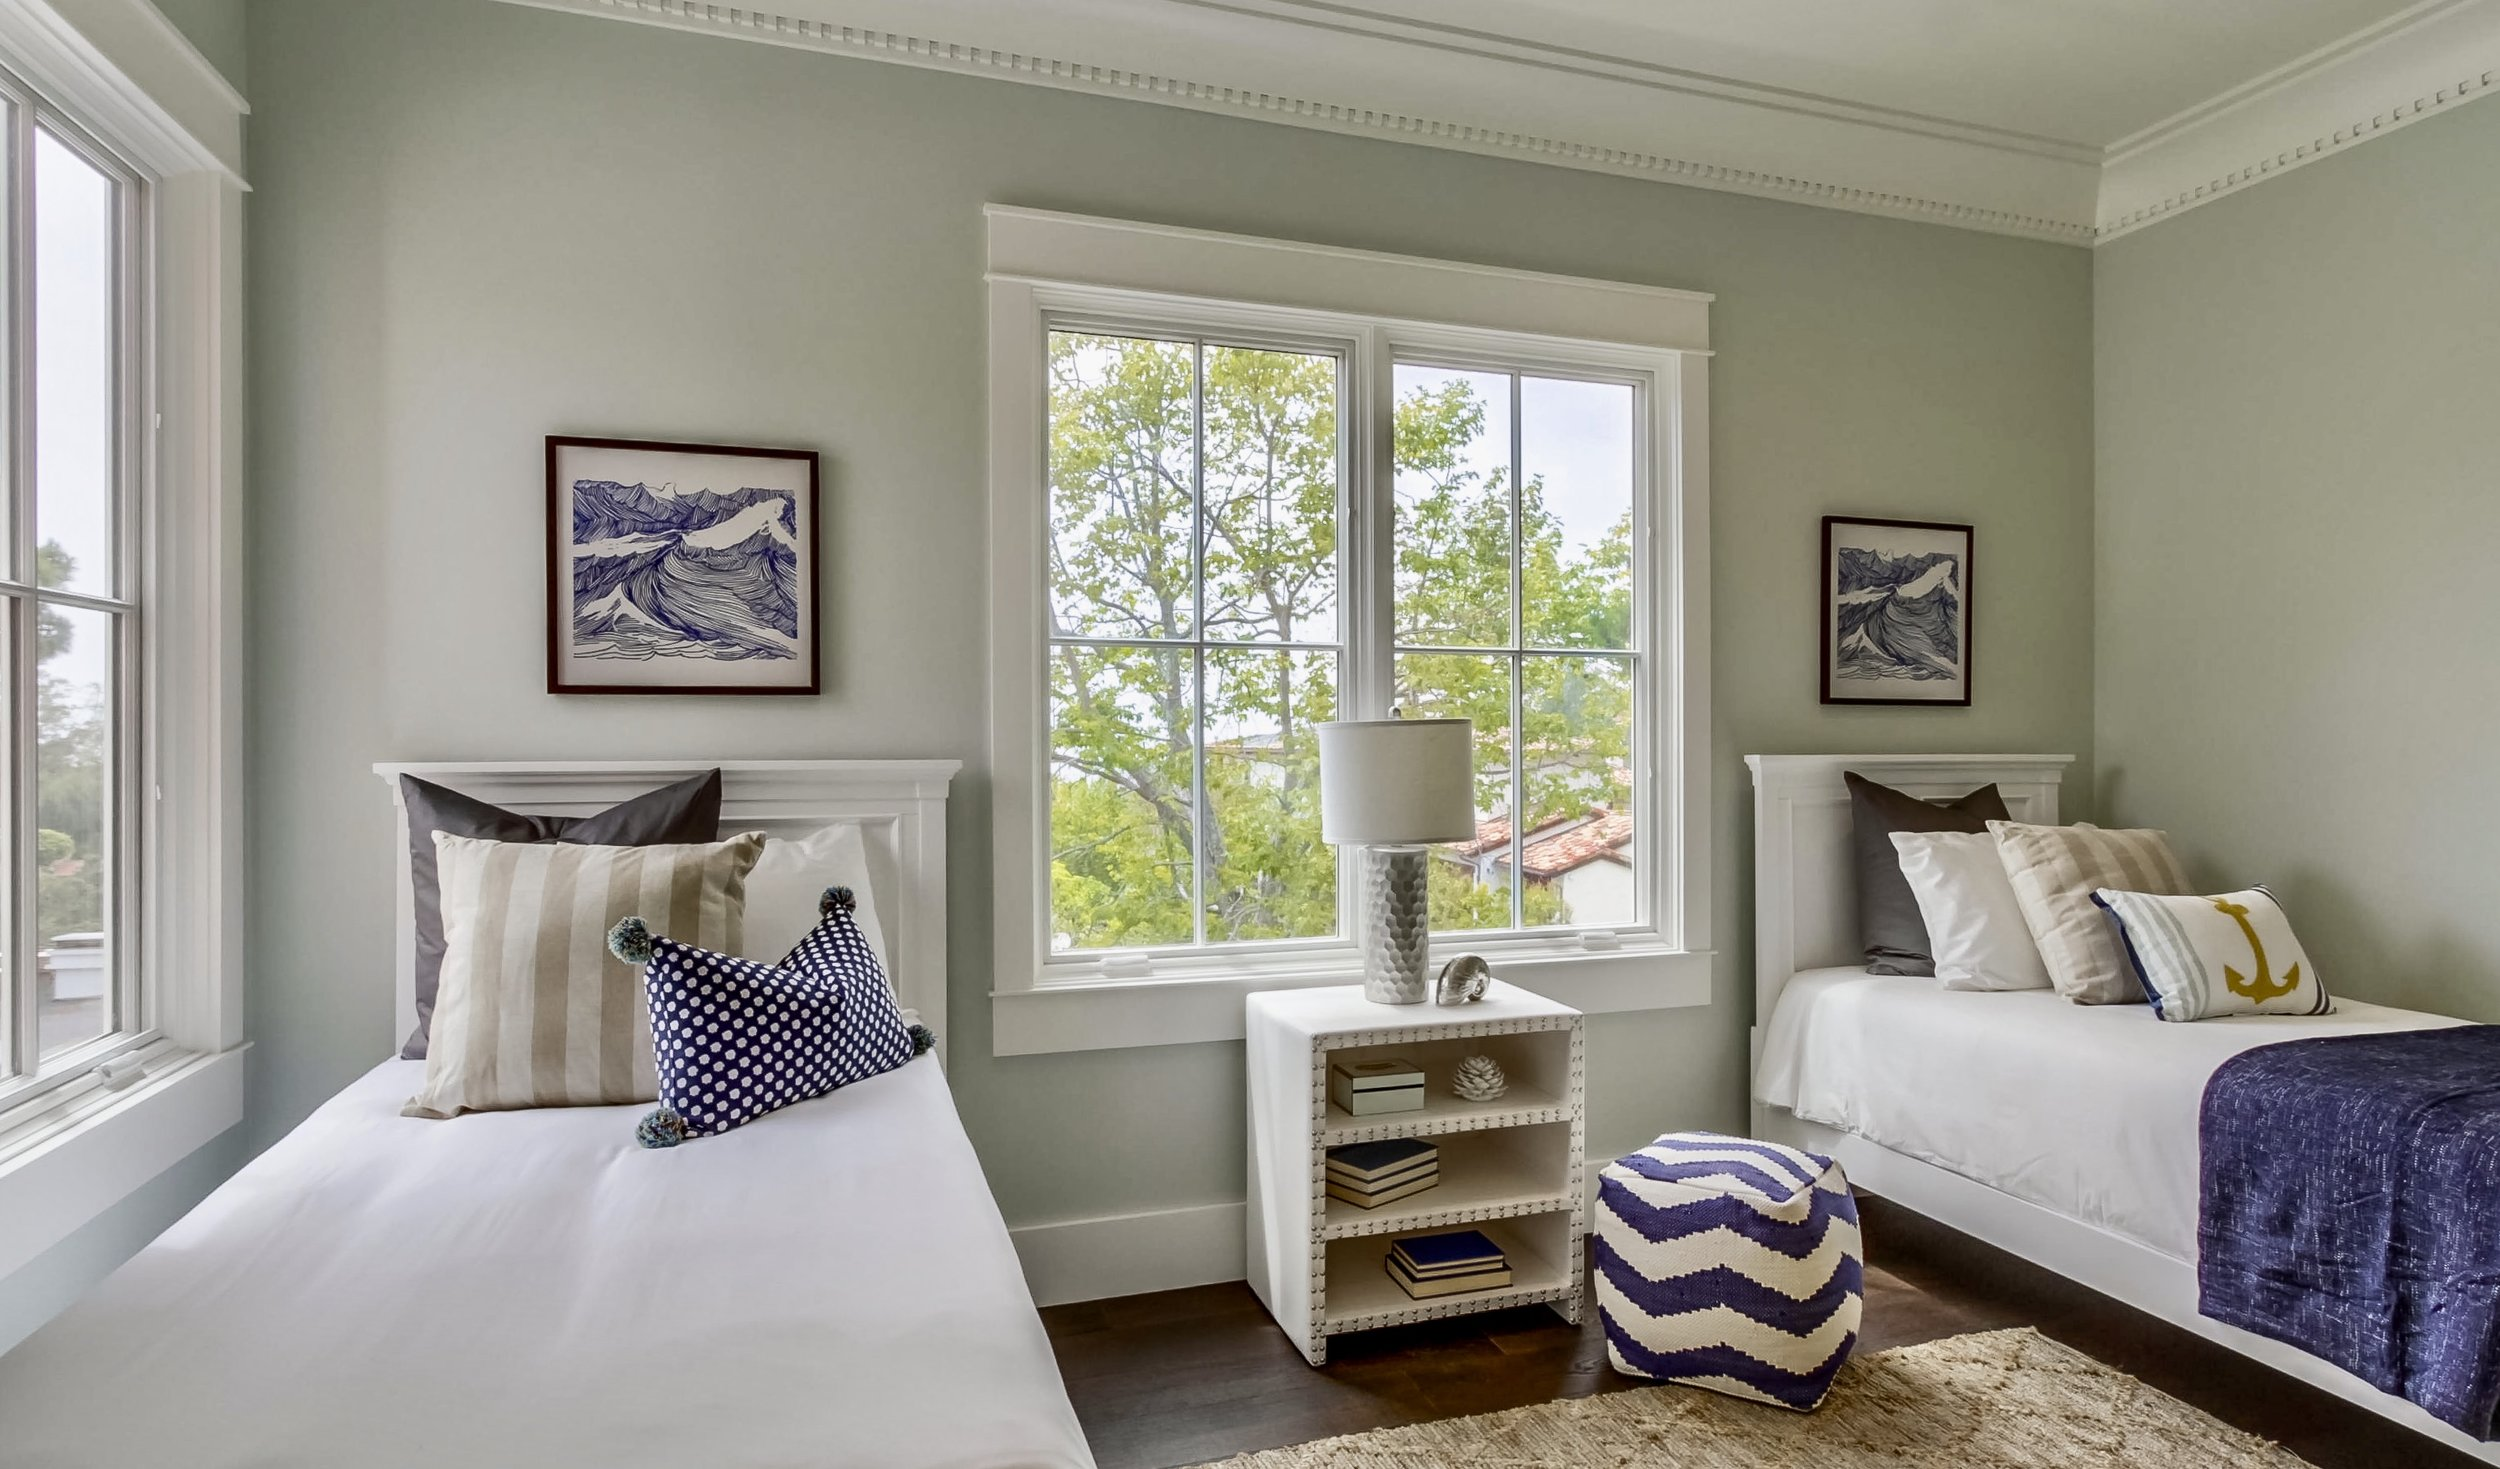 Grawski kids coastal bedroom